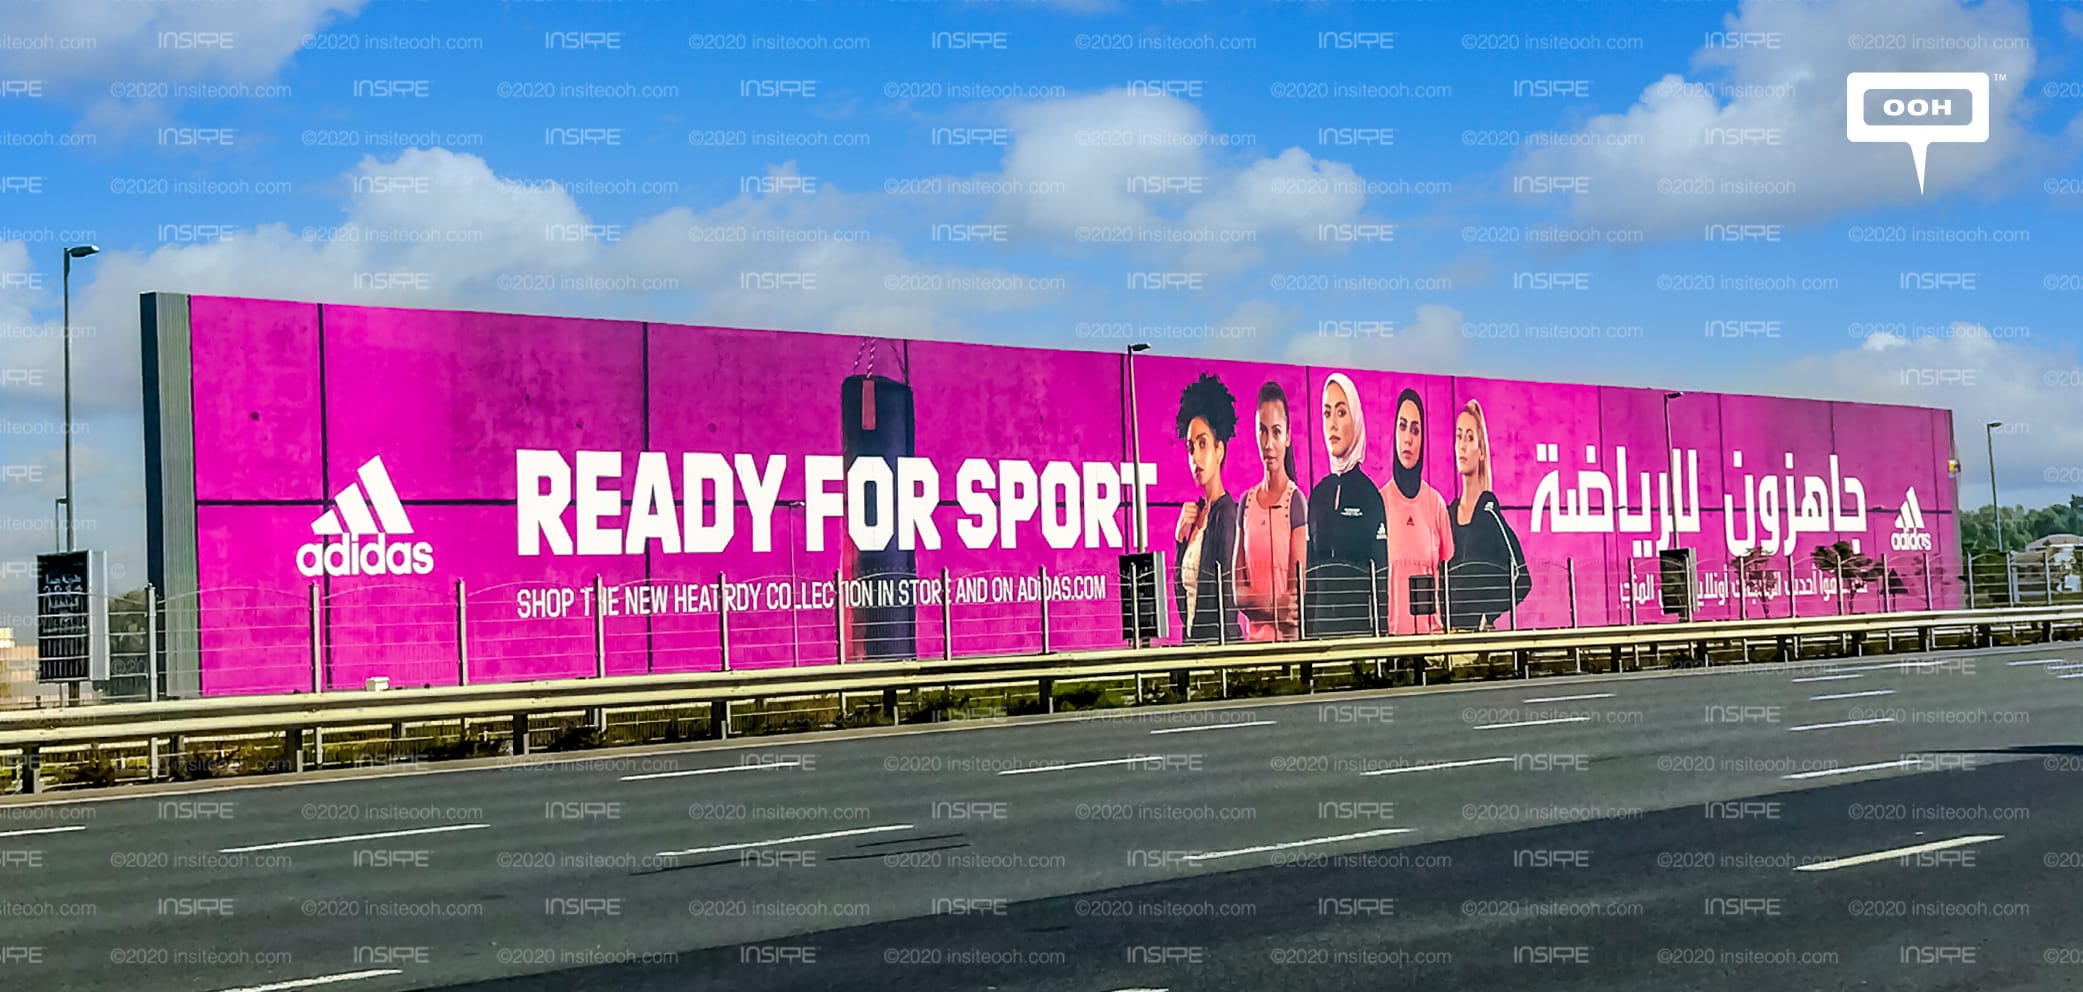 Adidas Is Ready For Sport With An Empowering Ooh Ad On Dubai S Billboards Insite Ooh Media Platform Outdoor Advertising Campaigns